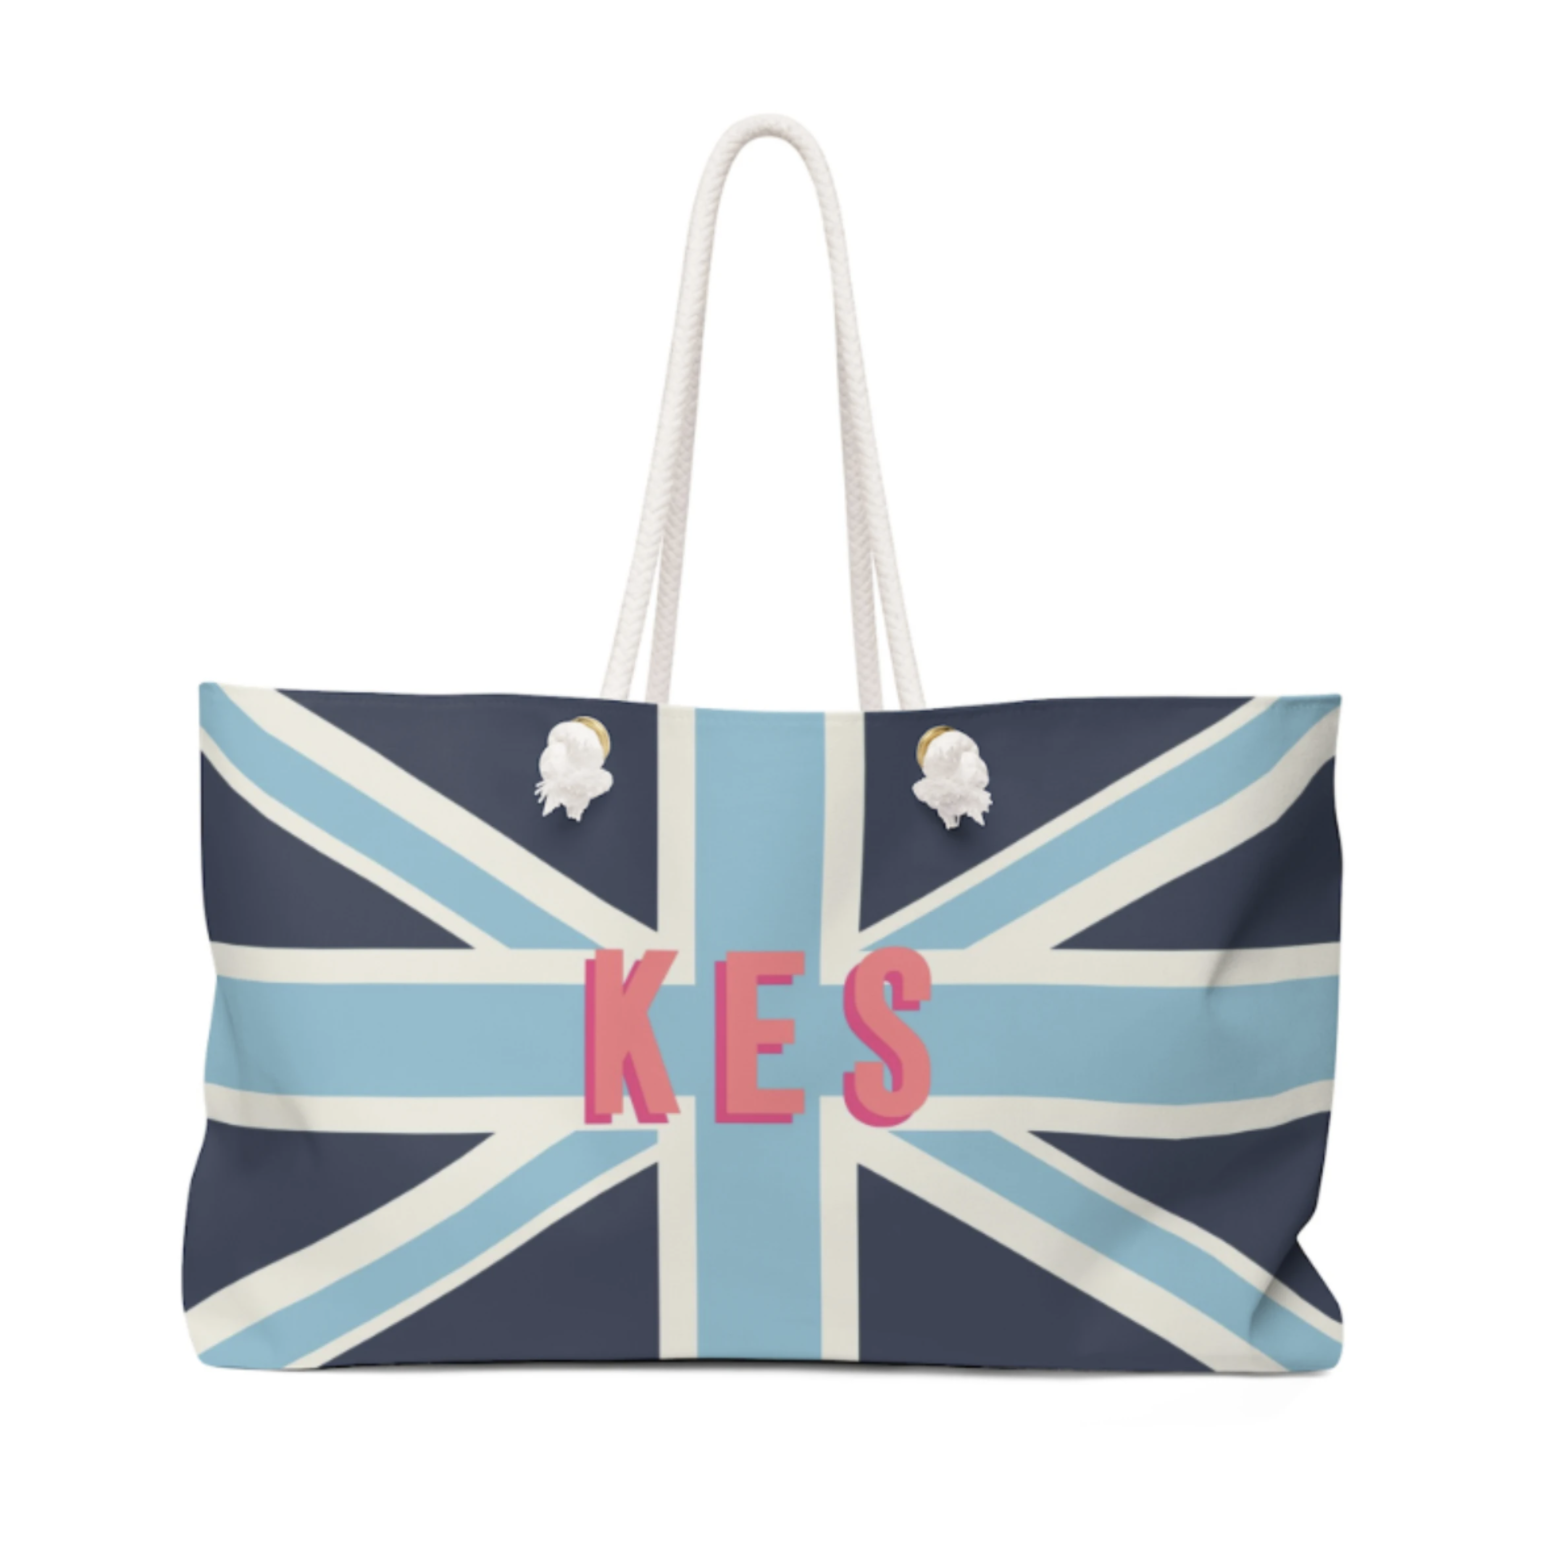 Union Jack Travel Tote (More colors available!)